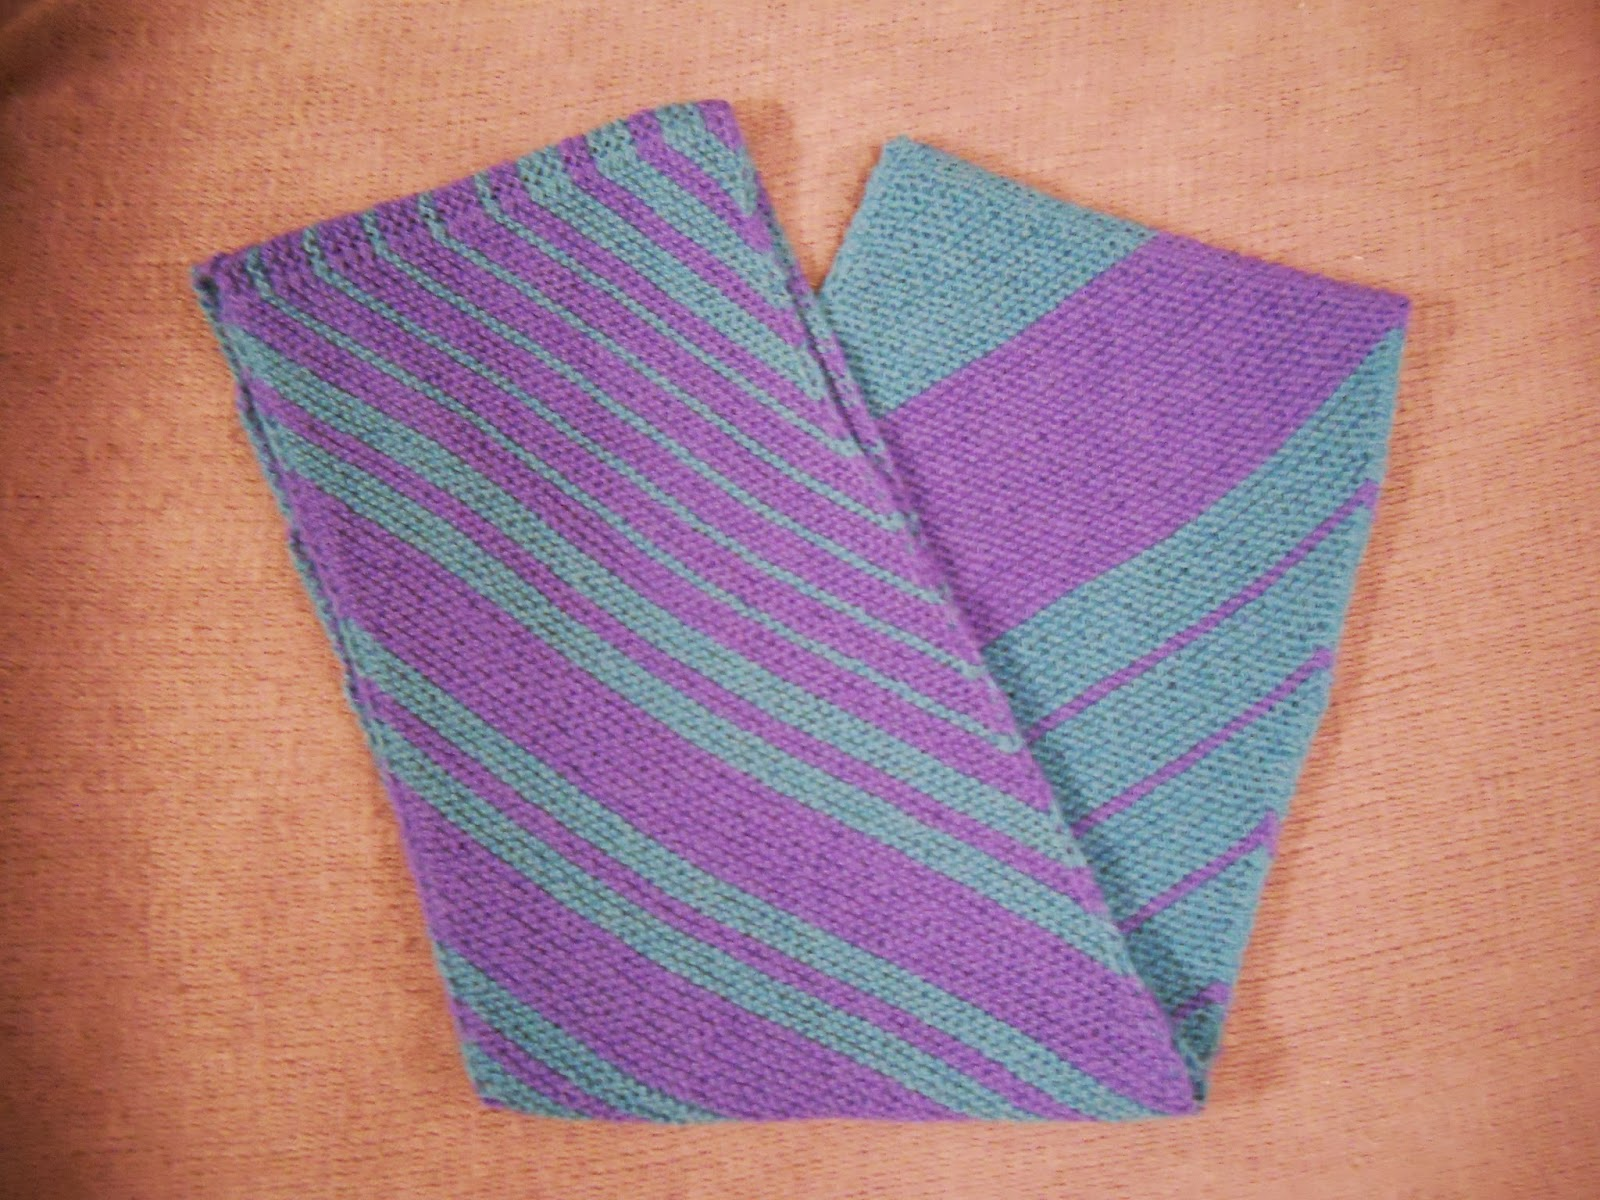 http://www.ravelry.com/projects/gizmo098/foolproof